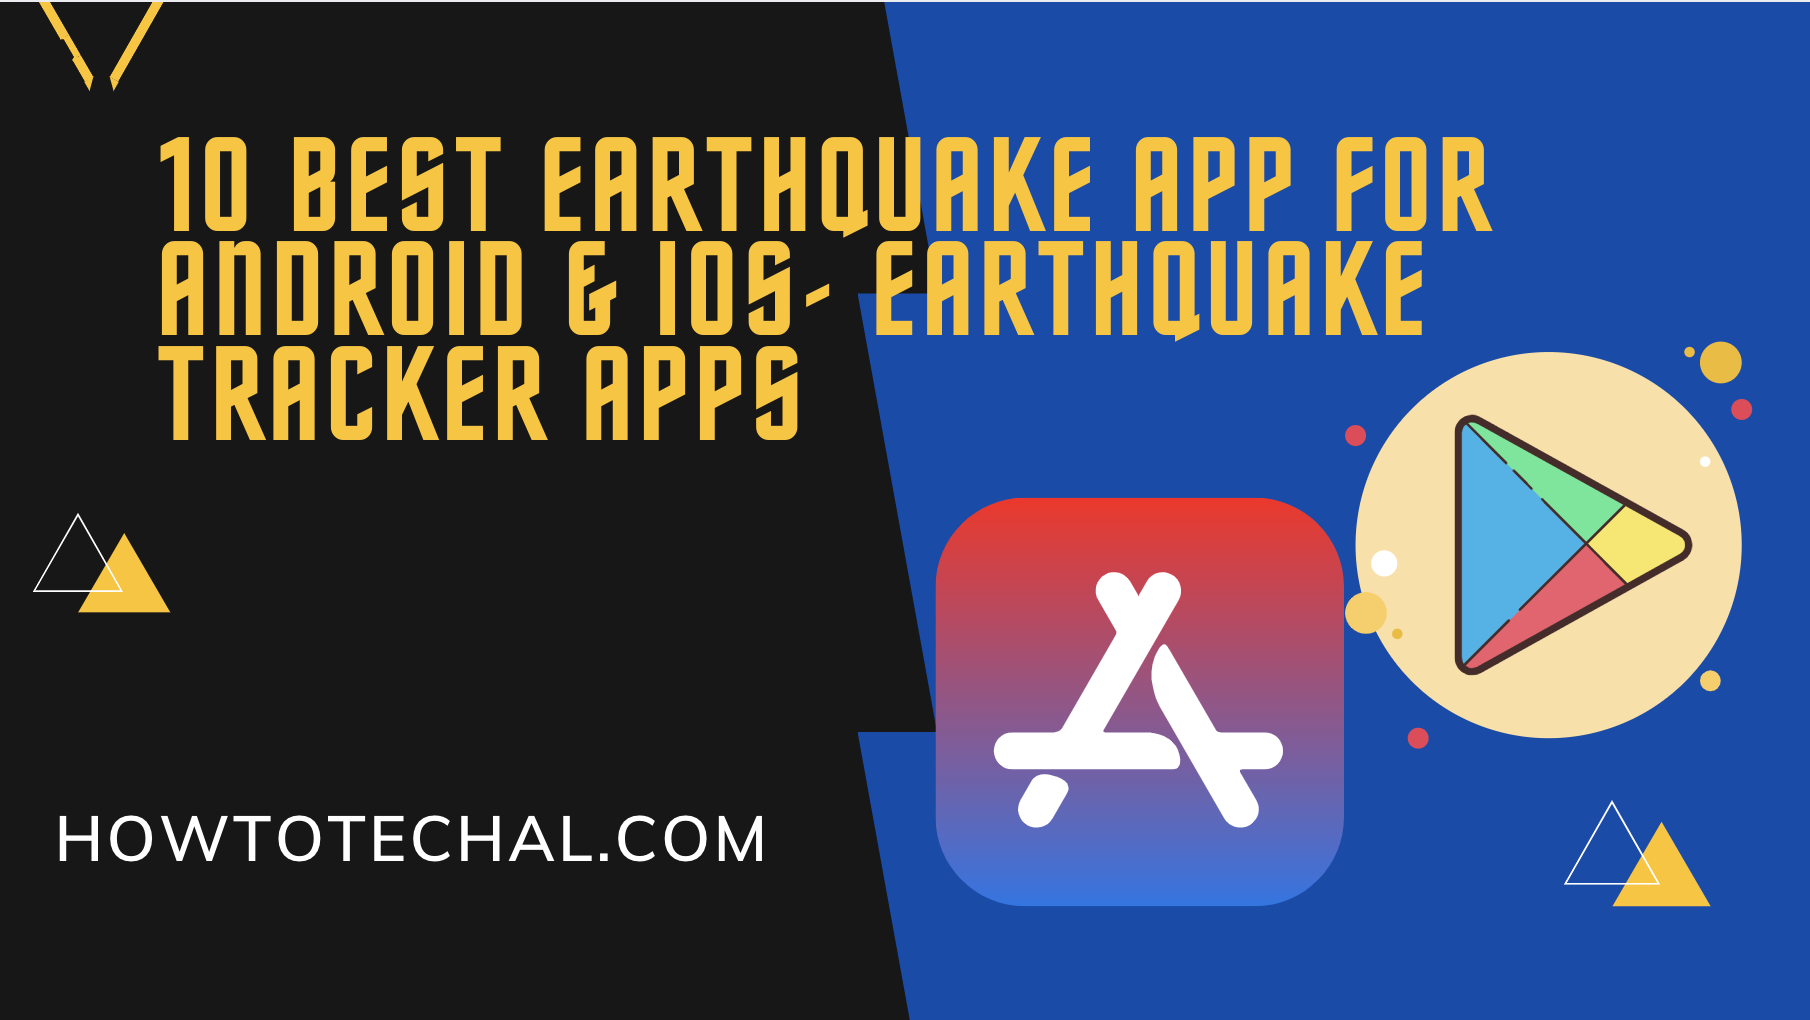 Best Earthquake App For Android & Ios